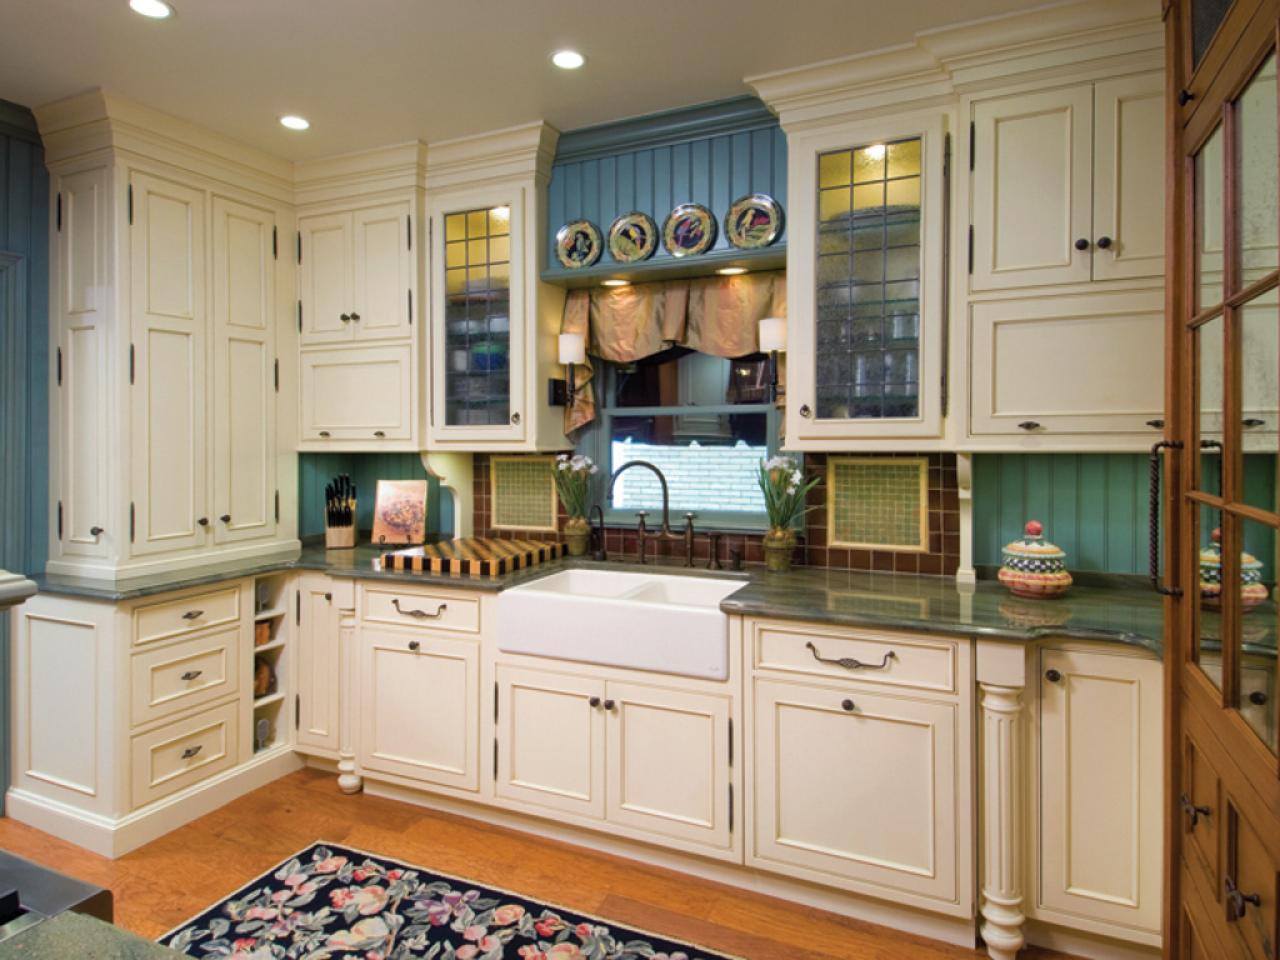 Quickest Way To Paint Kitchen Cabinets Painting Kitchen Backsplashes Pictures And Ideas From Hgtv